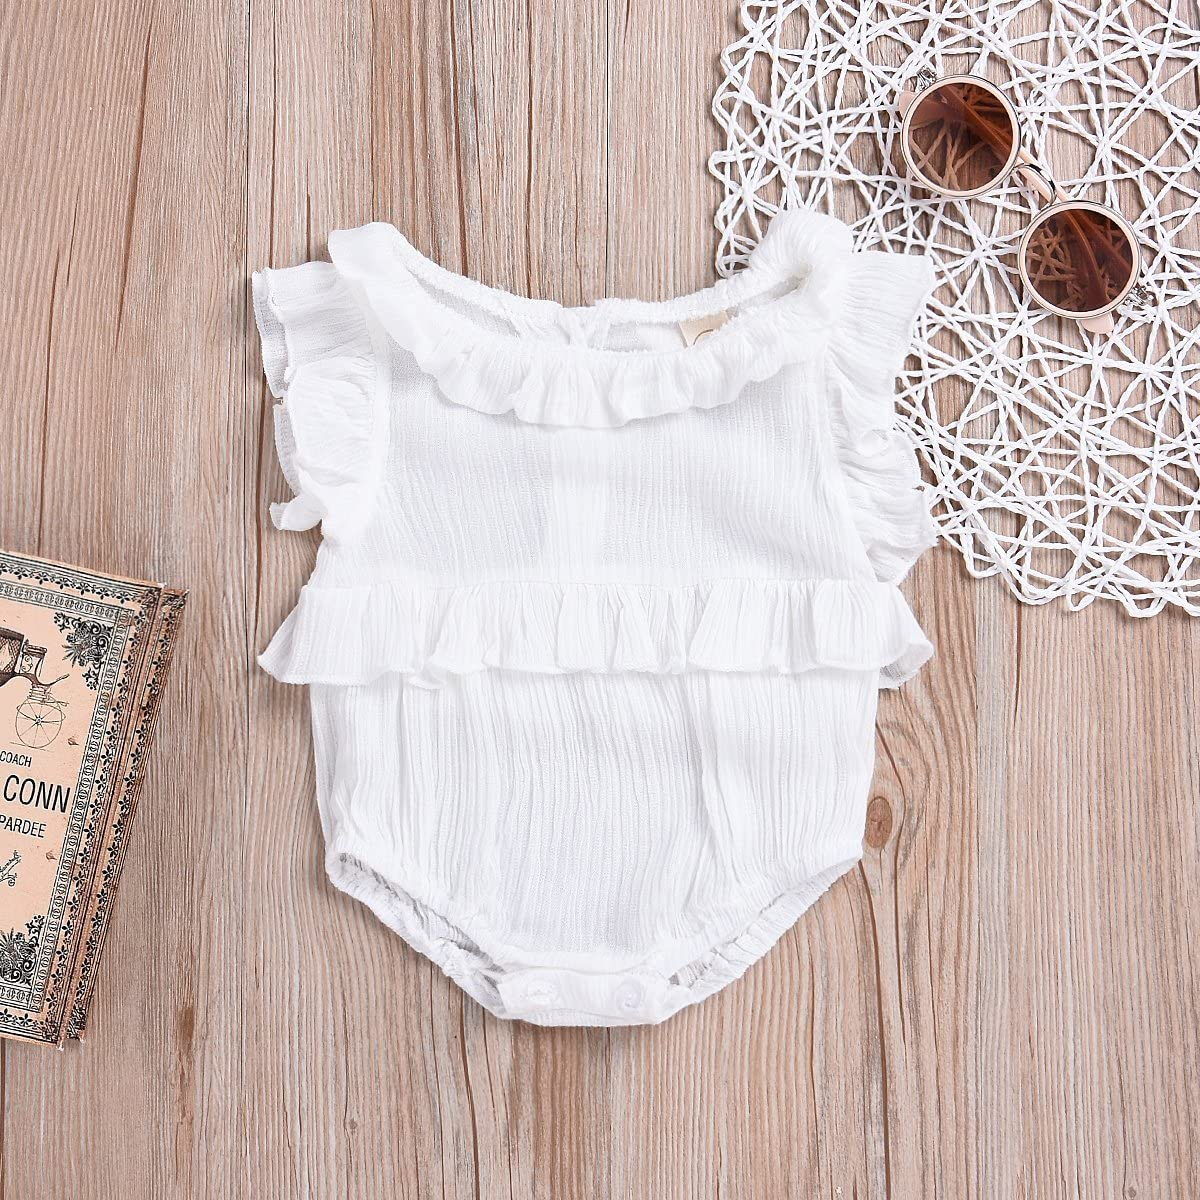 Hopiumy Infant Baby Girl Clothes Sleeve Romper Bodysuit Jumpsuit Outfit 0-24M